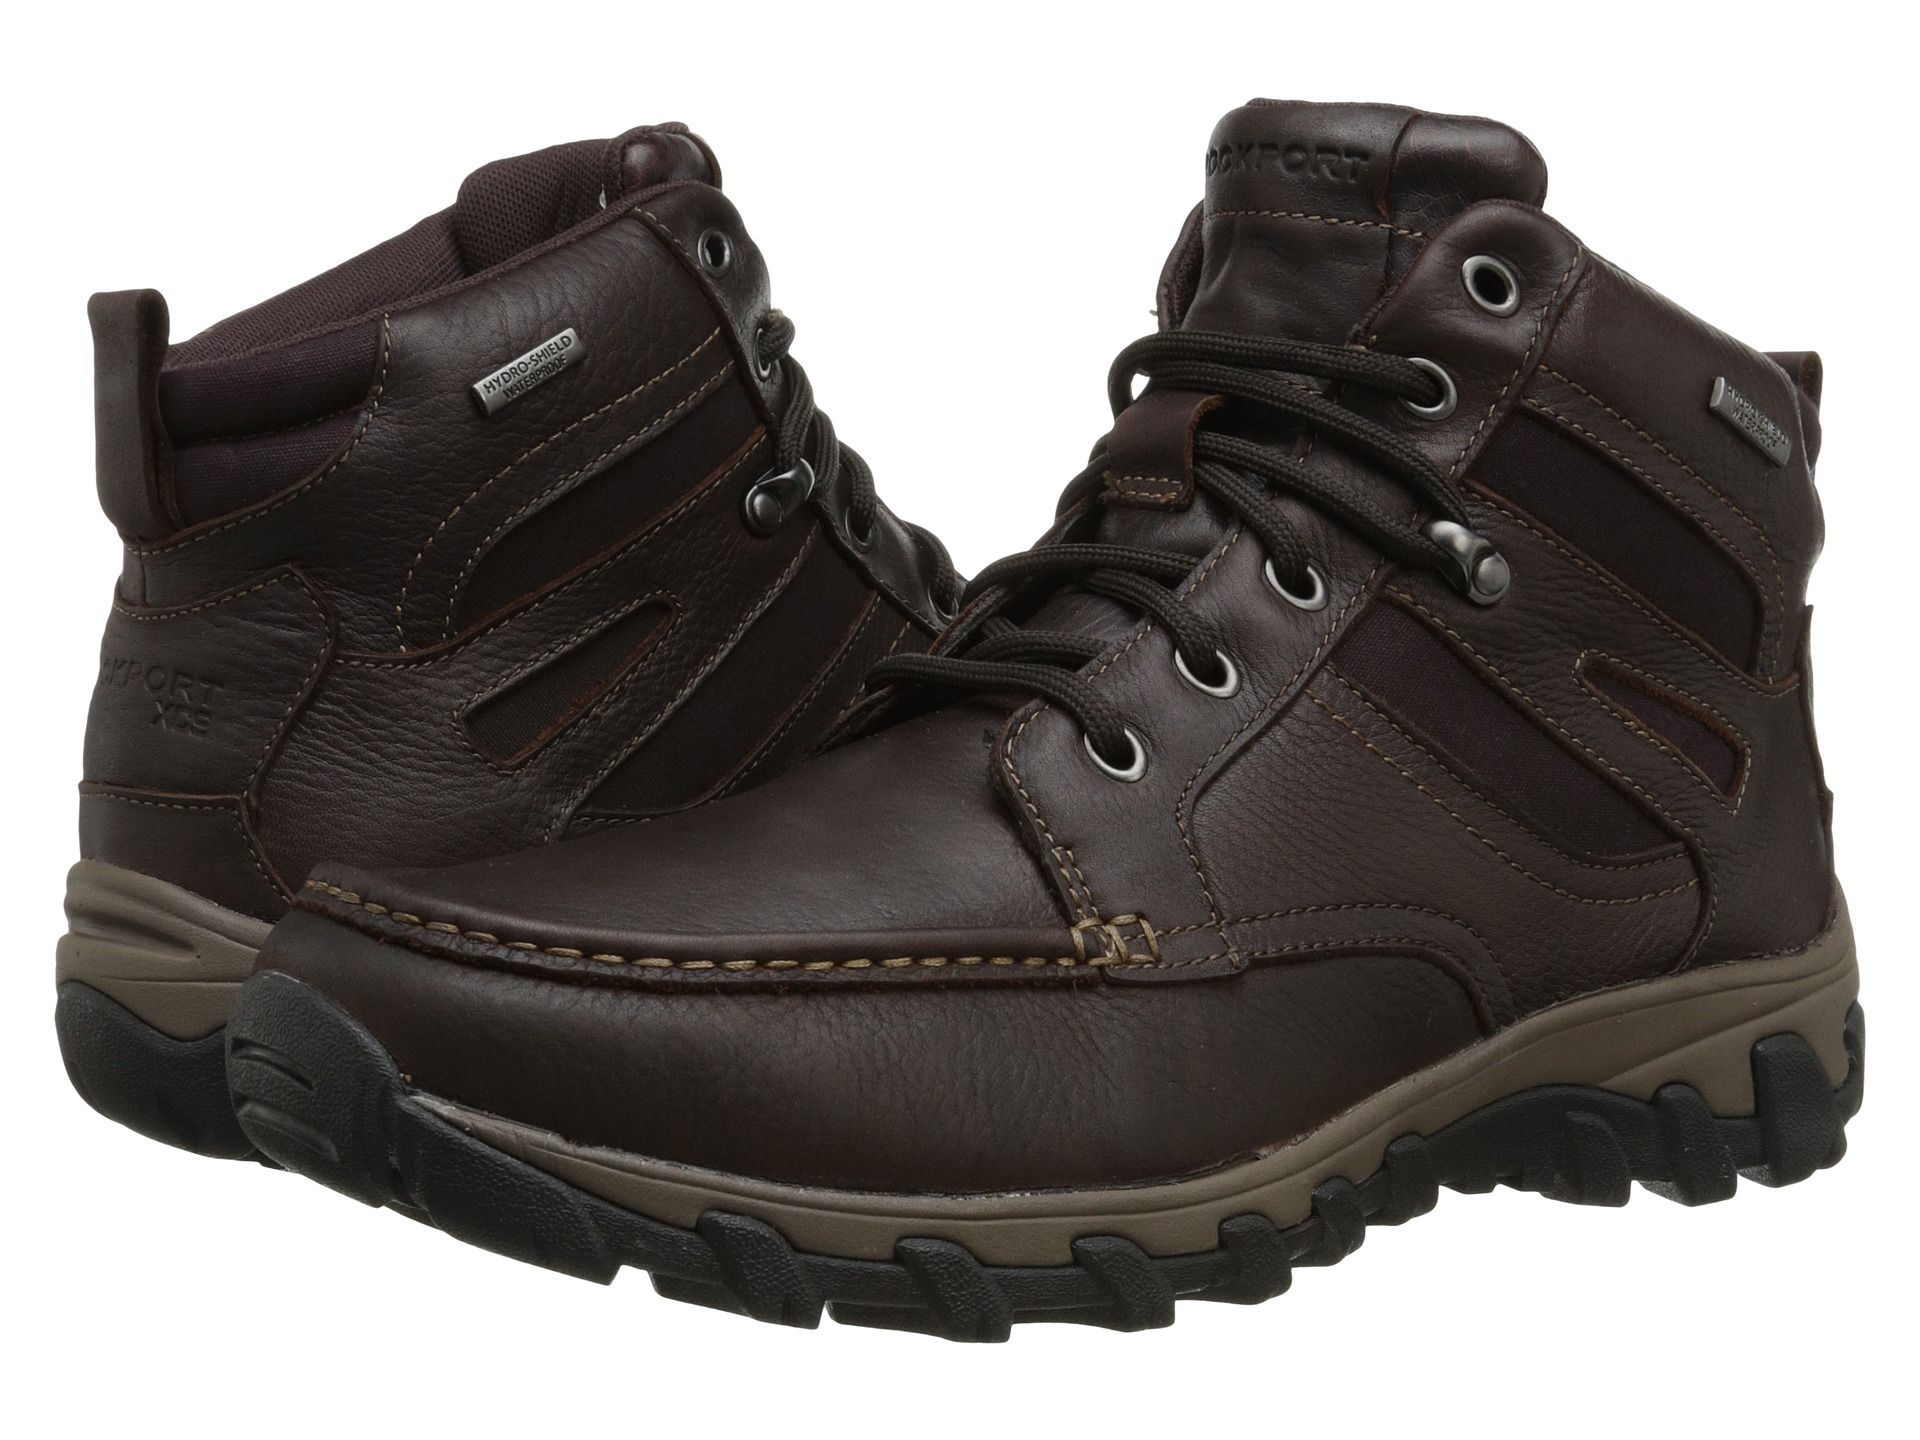 rockport cold springs plus mocc toe boot high 7 eyelets